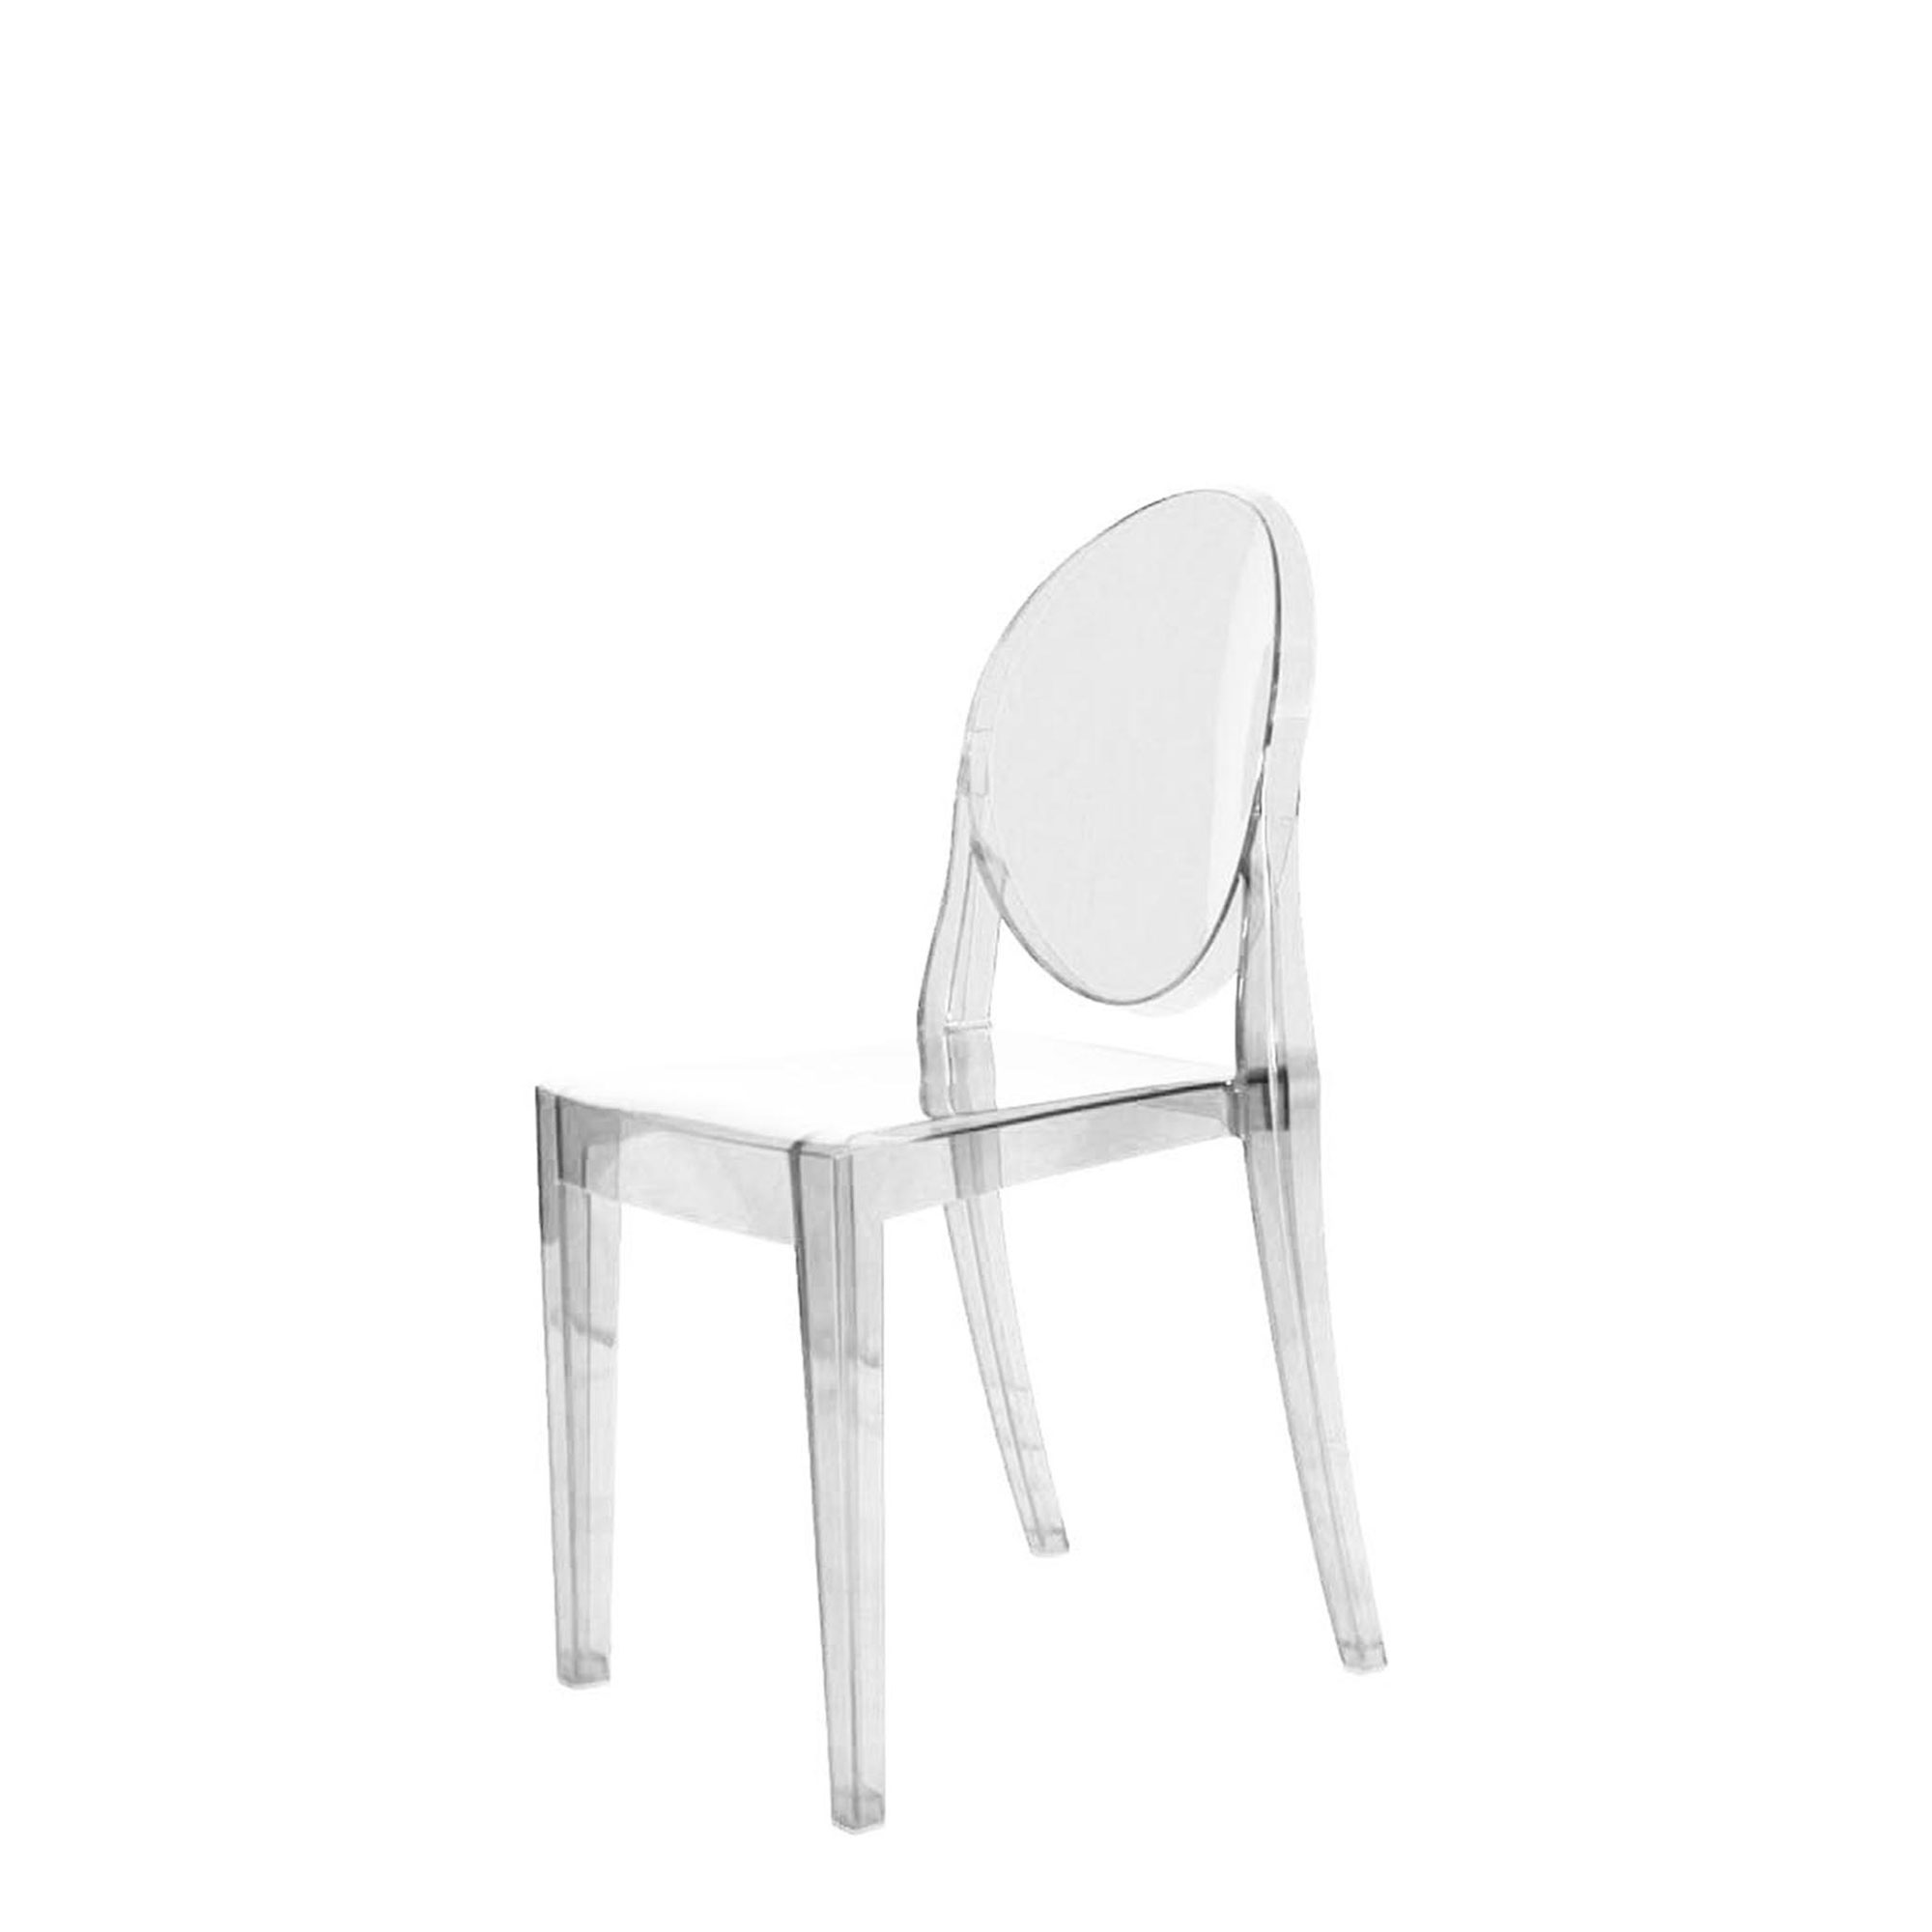 victoria ghost chair office repair parts clear dining chairs fishpools chairvictoria